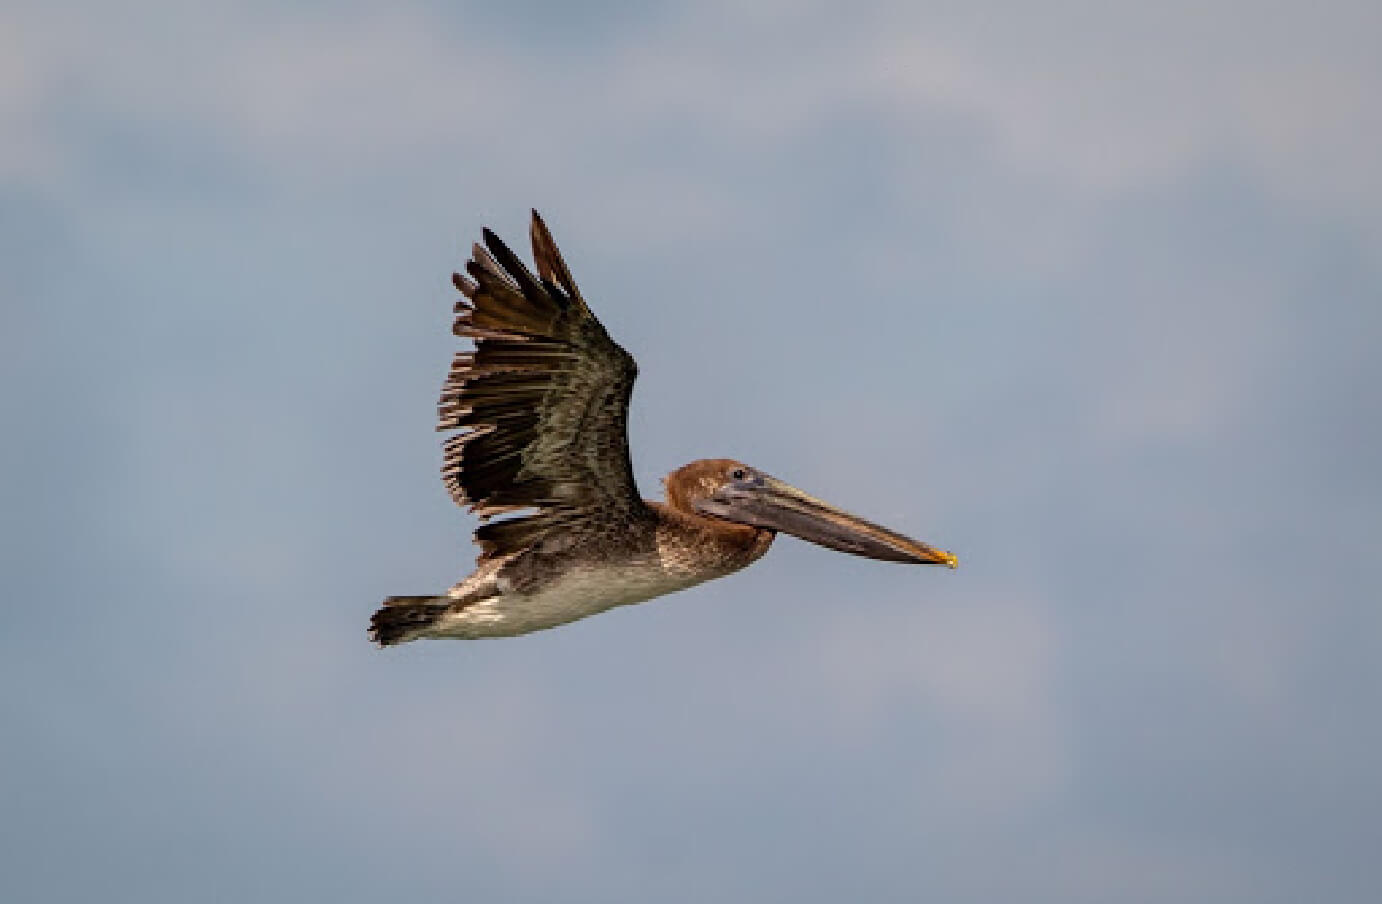 Side profile of a Brown Pelican flying in the sky